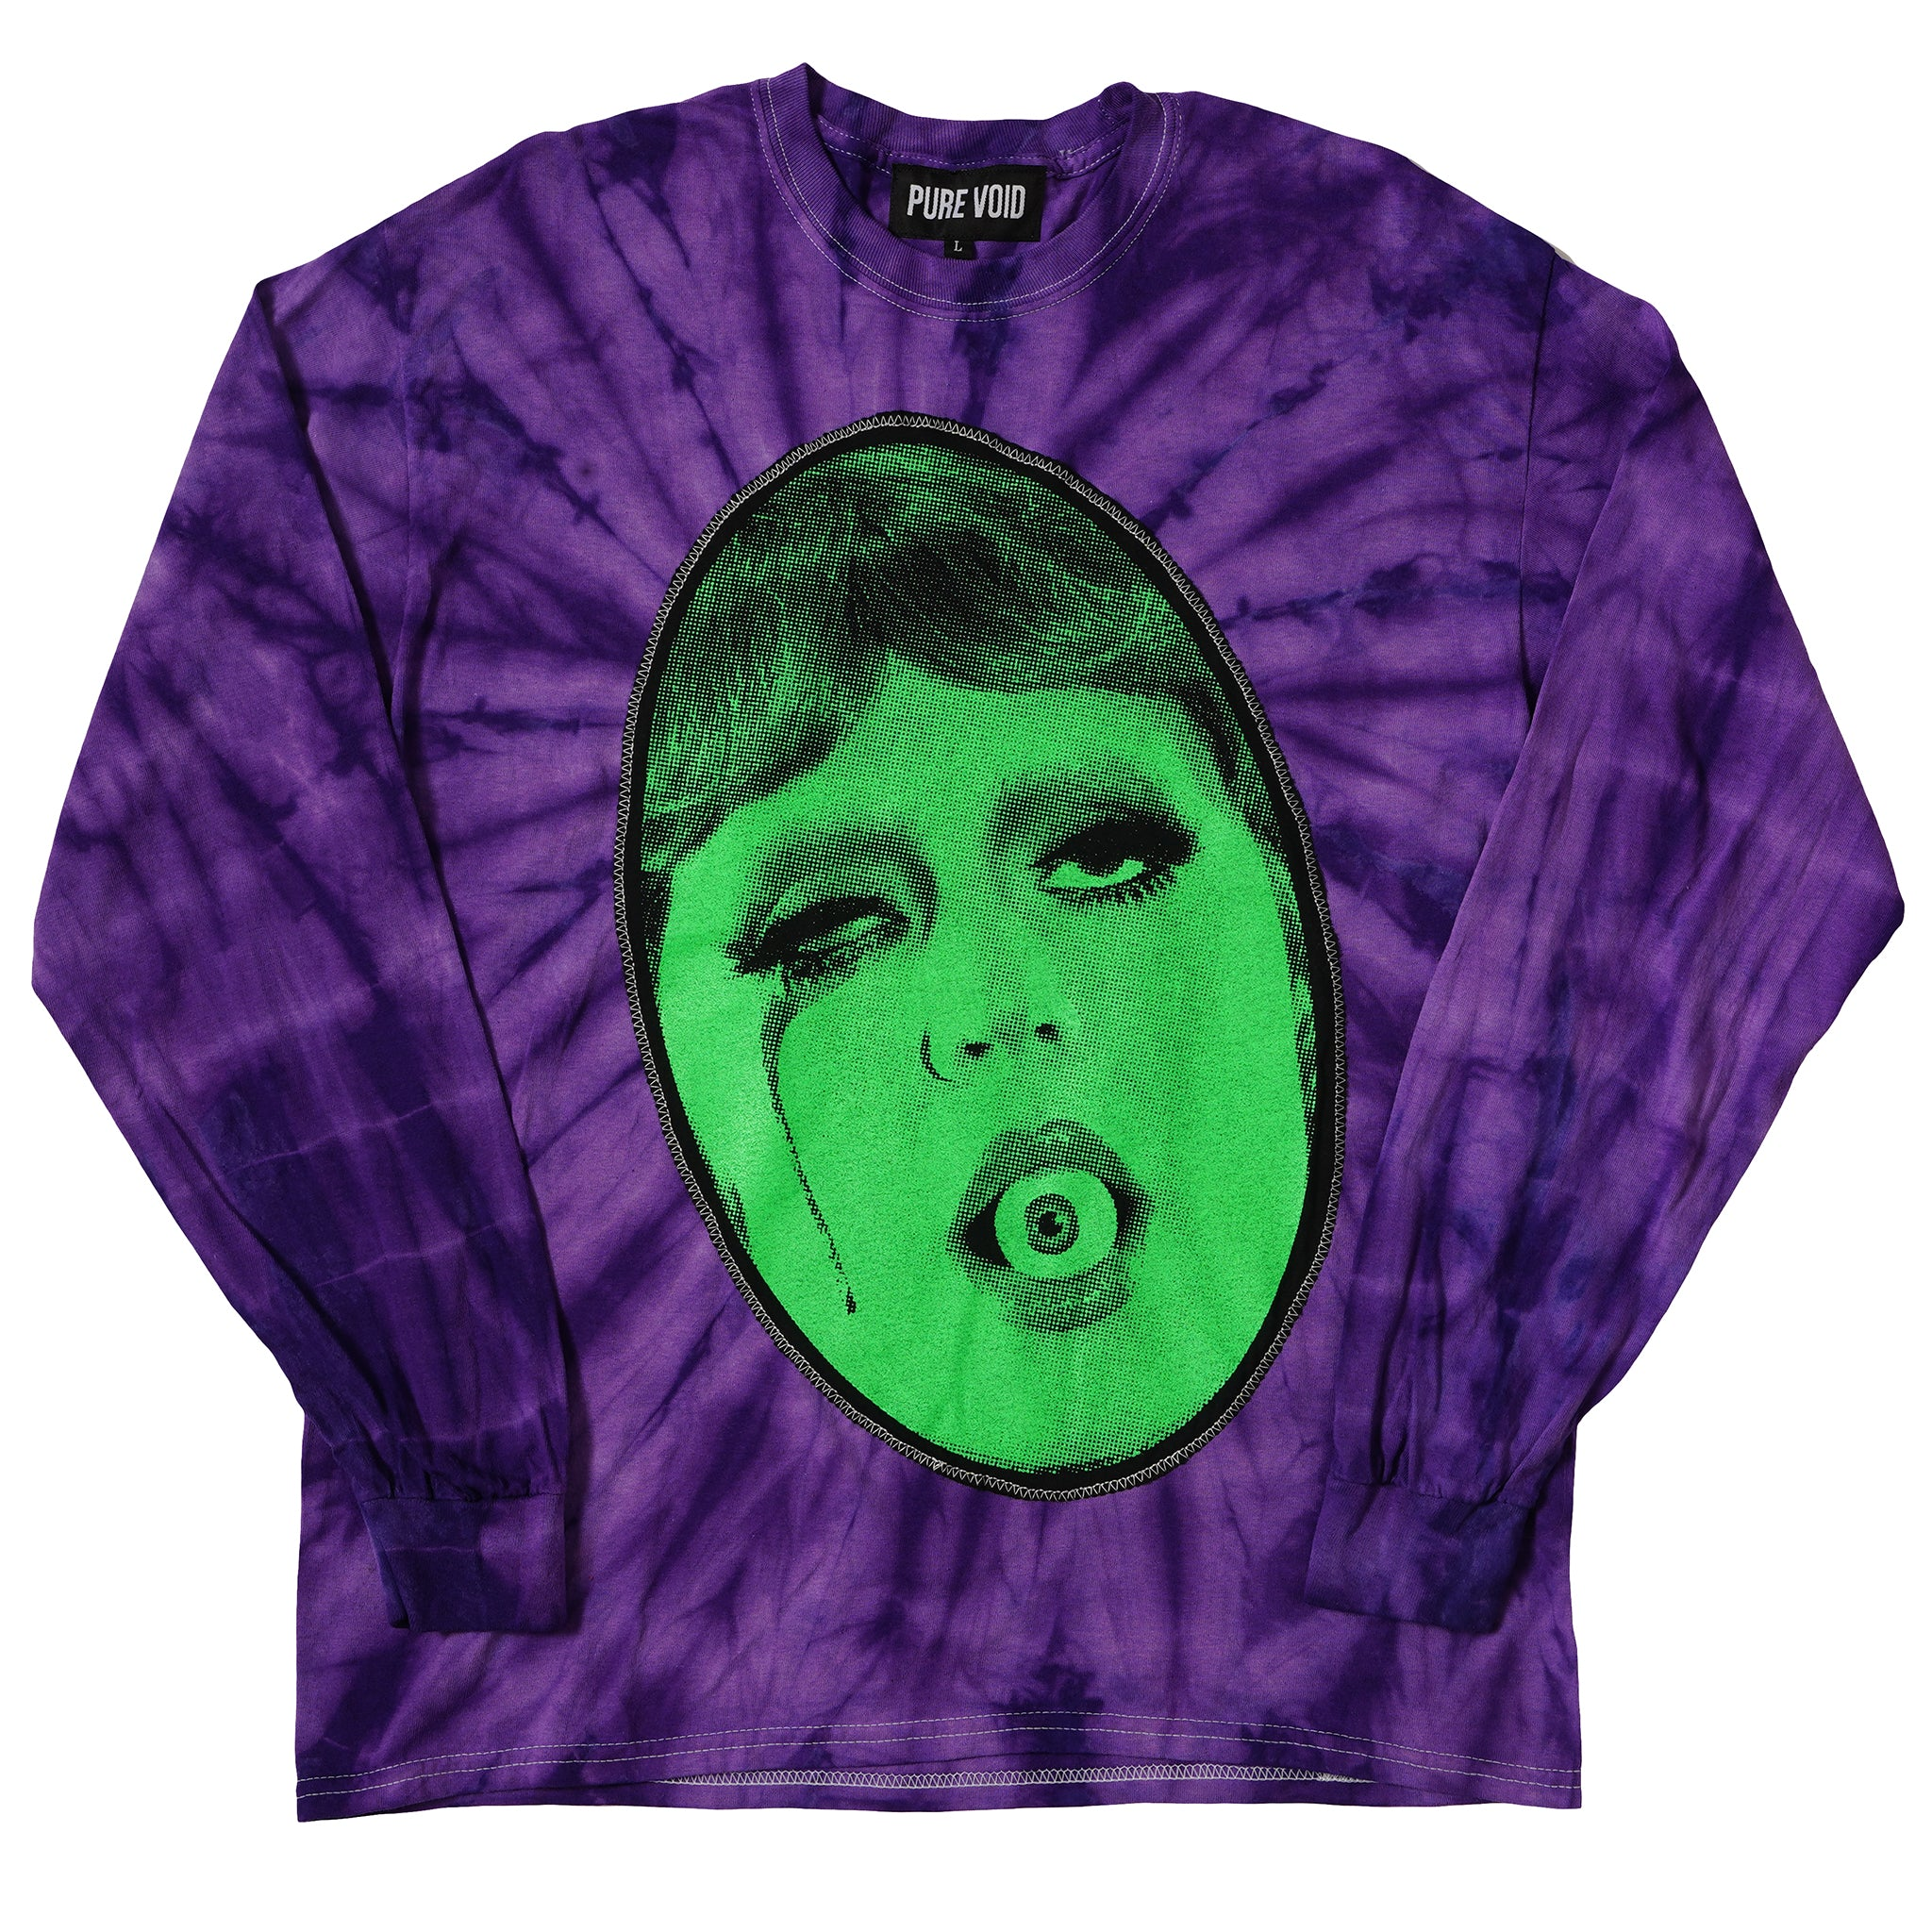 Wicked Eyeball Patch Shirt